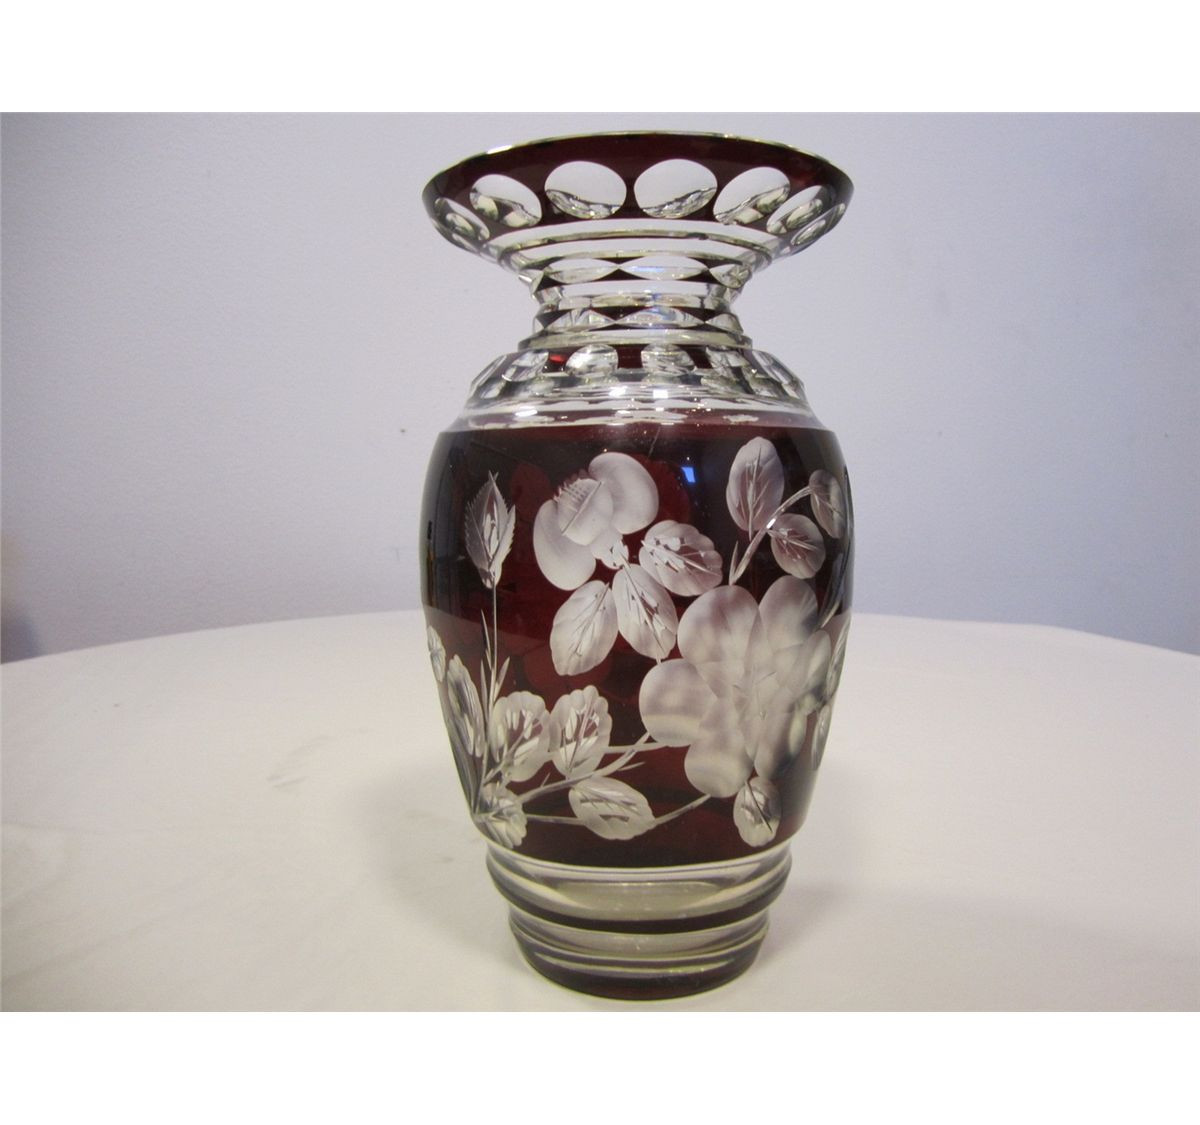 tall red ceramic vase of antique bohemian czech deep ruby red cut to clear crystal vase 11 1 pertaining to image 2 antique bohemian czech deep ruby red cut to clear crystal vase 11 1